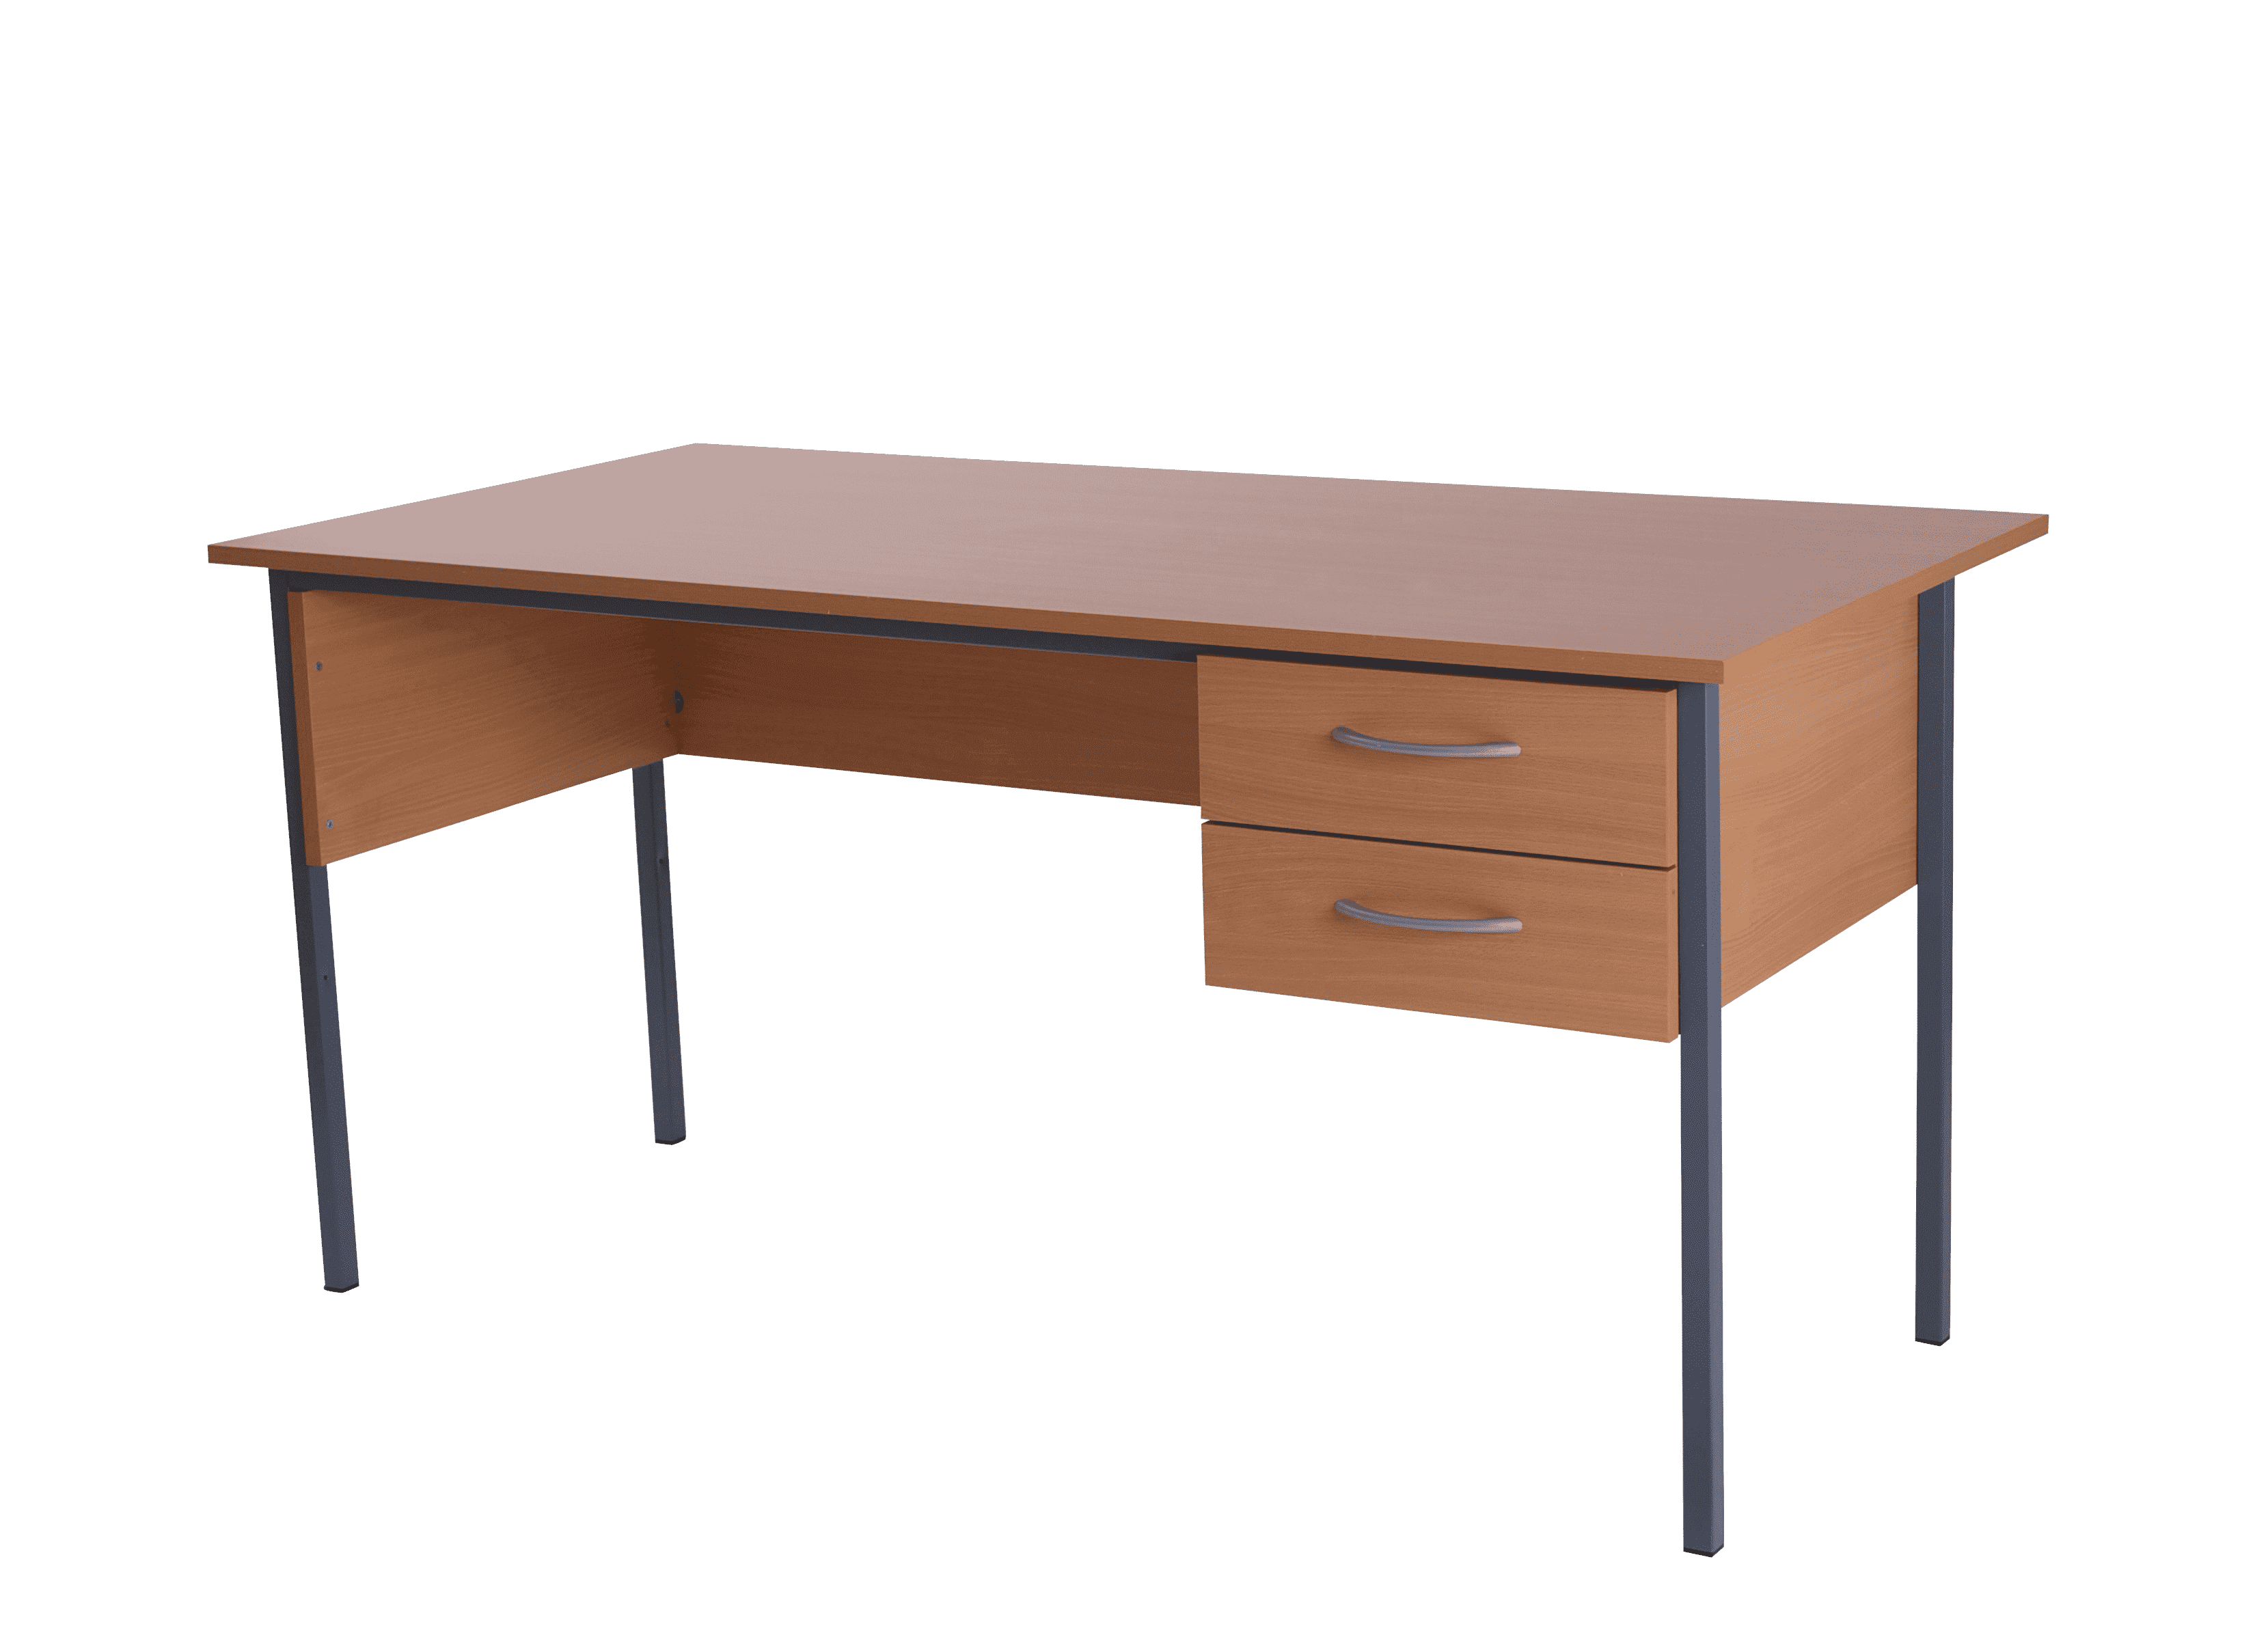 Basix 1500 Admiralty desk with 2 standard drawers